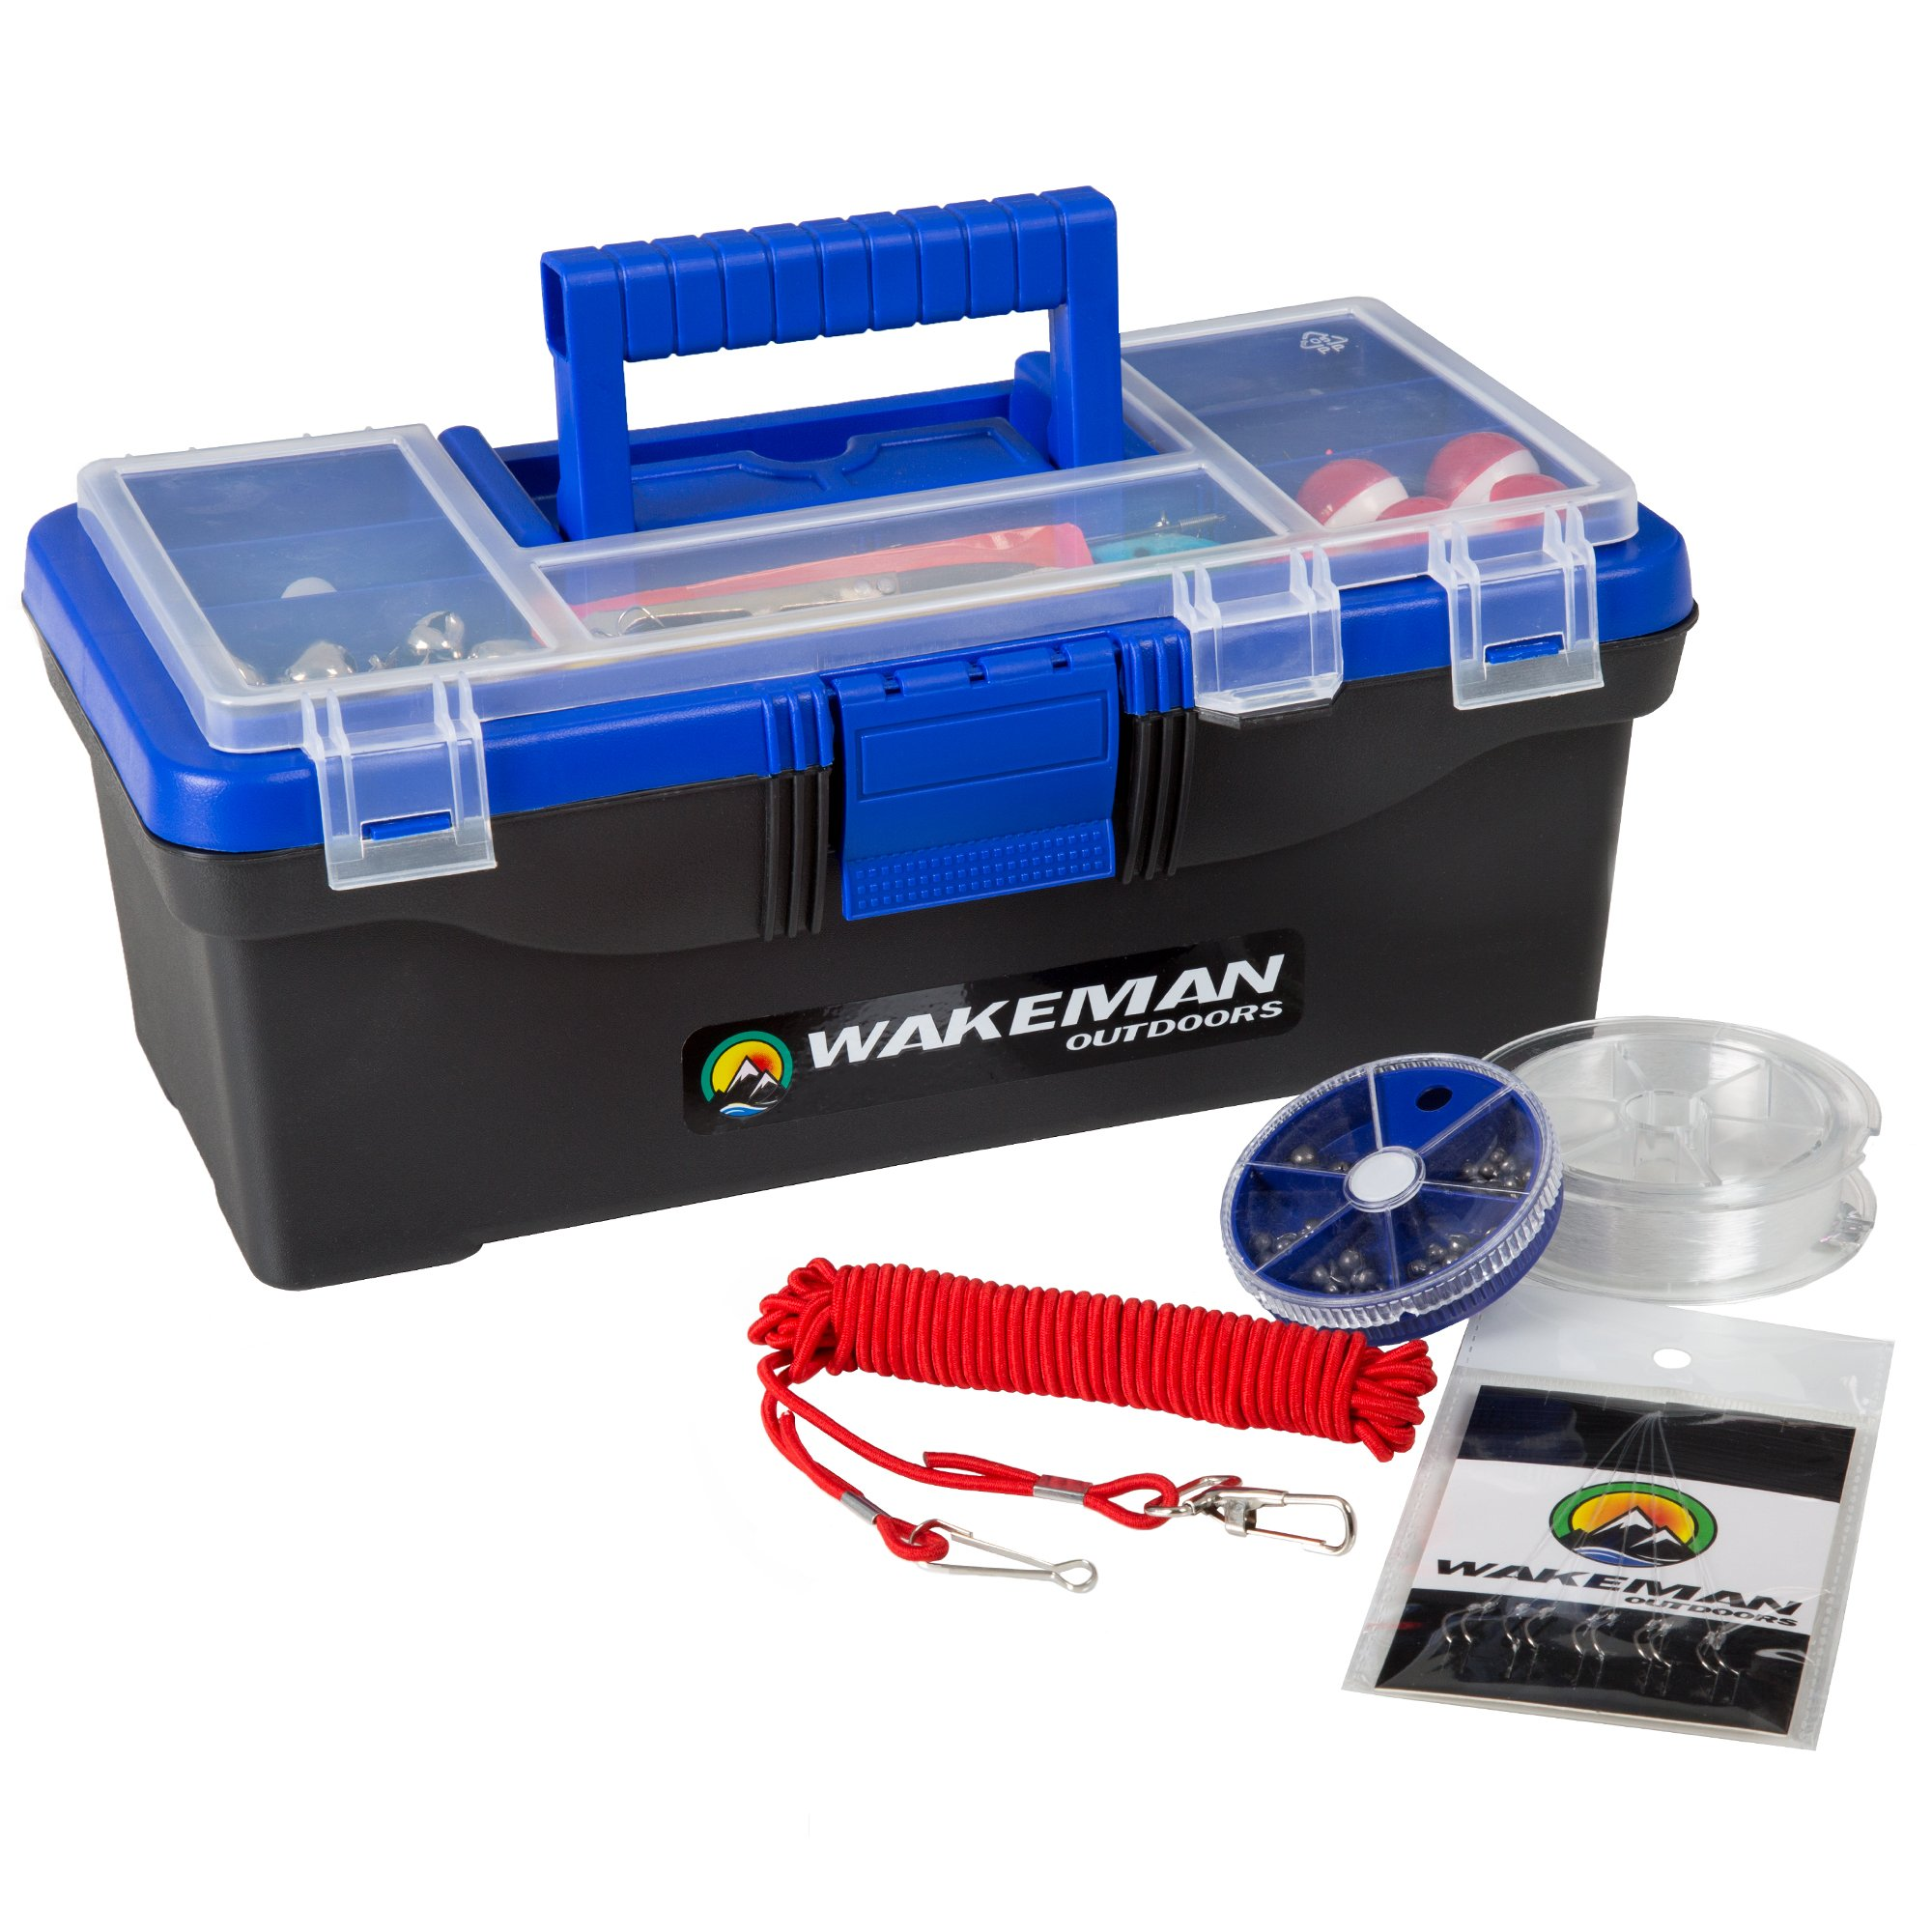 Fishing Single Tray Tackle Box- 55 Piece Tackle Gear Kit Includes Sinkers, Hooks Lures Bobbers Swivels and Fishing Line By Wakeman Outdoors Blue by Wakeman